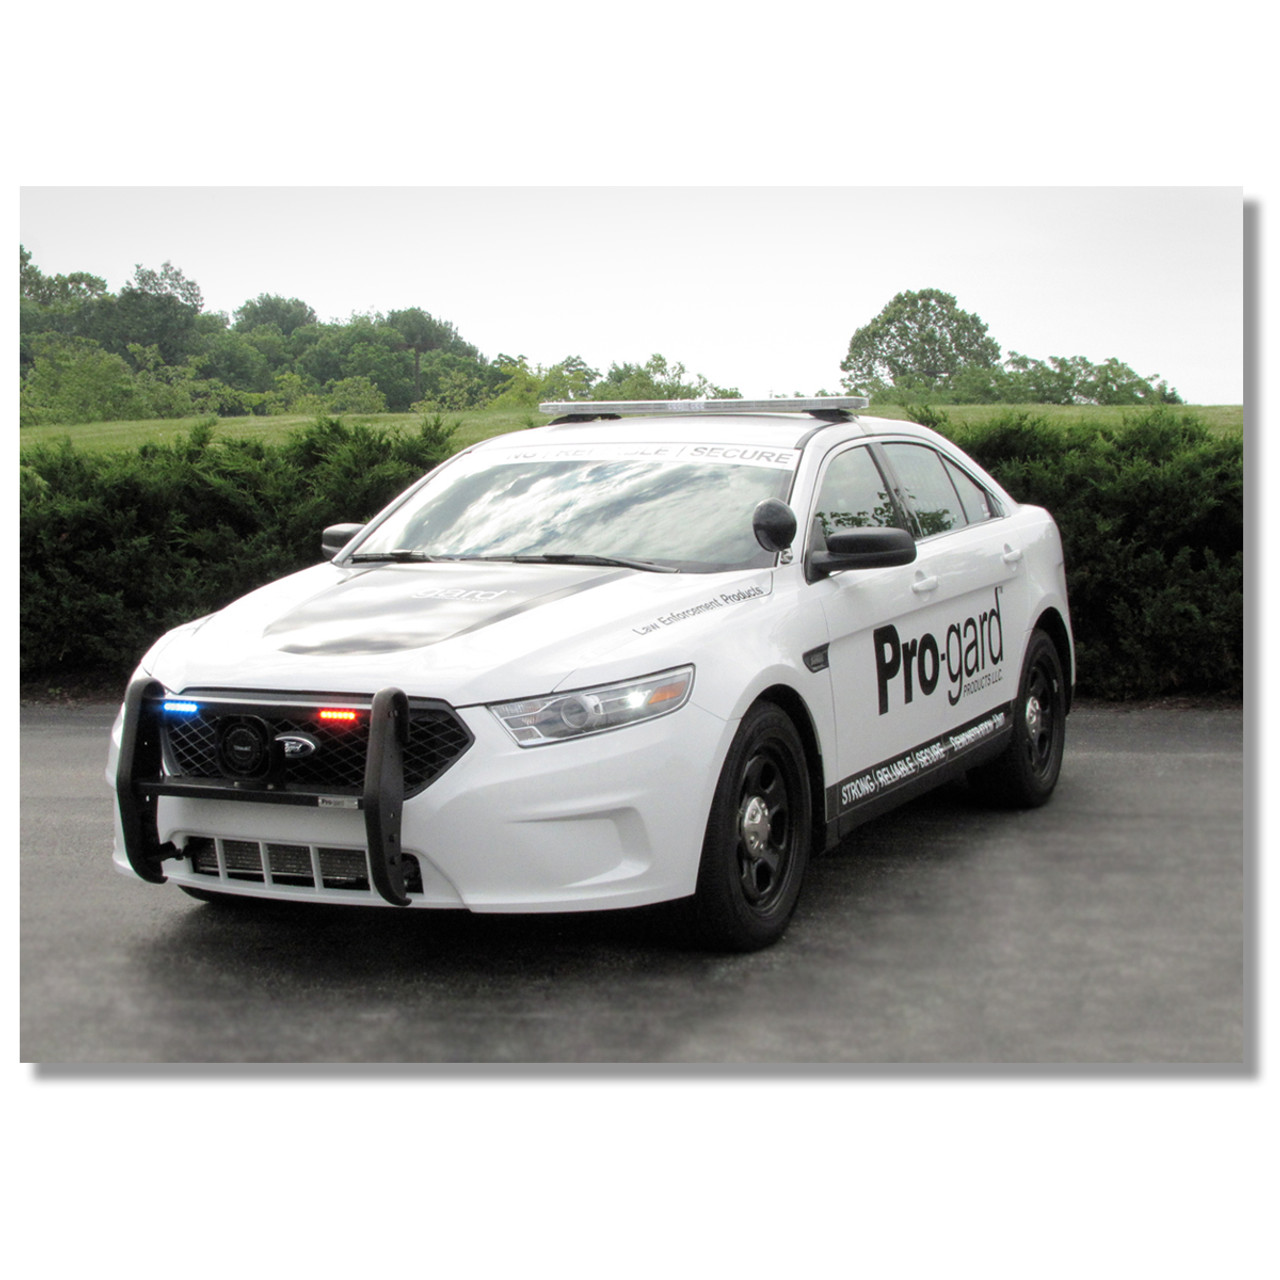 Police Interceptor Sedan Push Bumper Grill Guard by Progard, 2013-2019